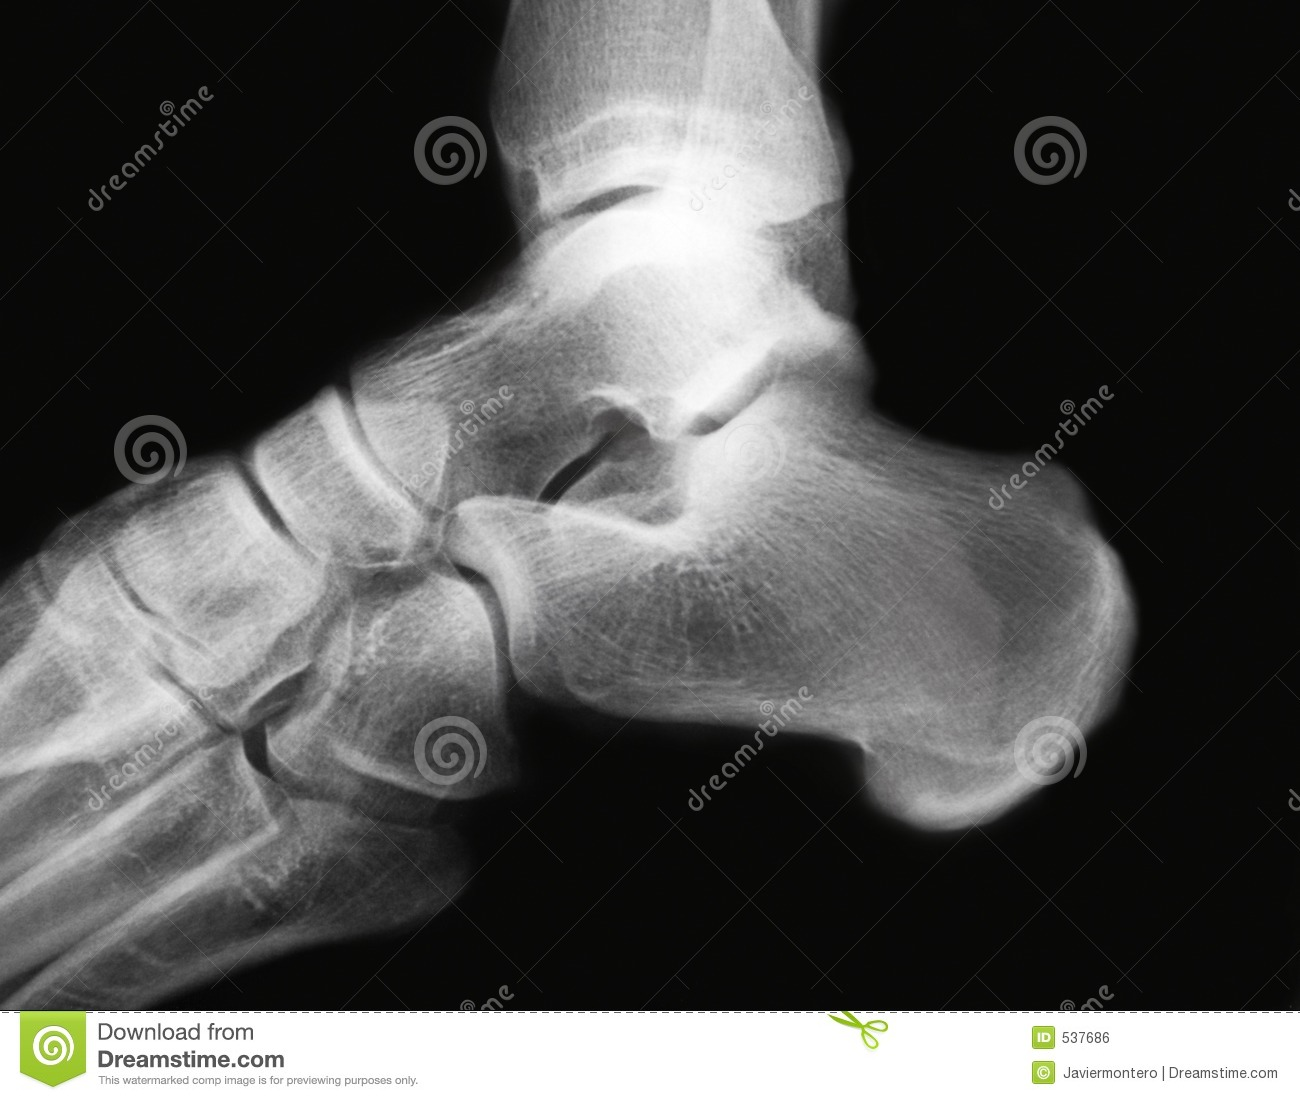 Ankle x-ray